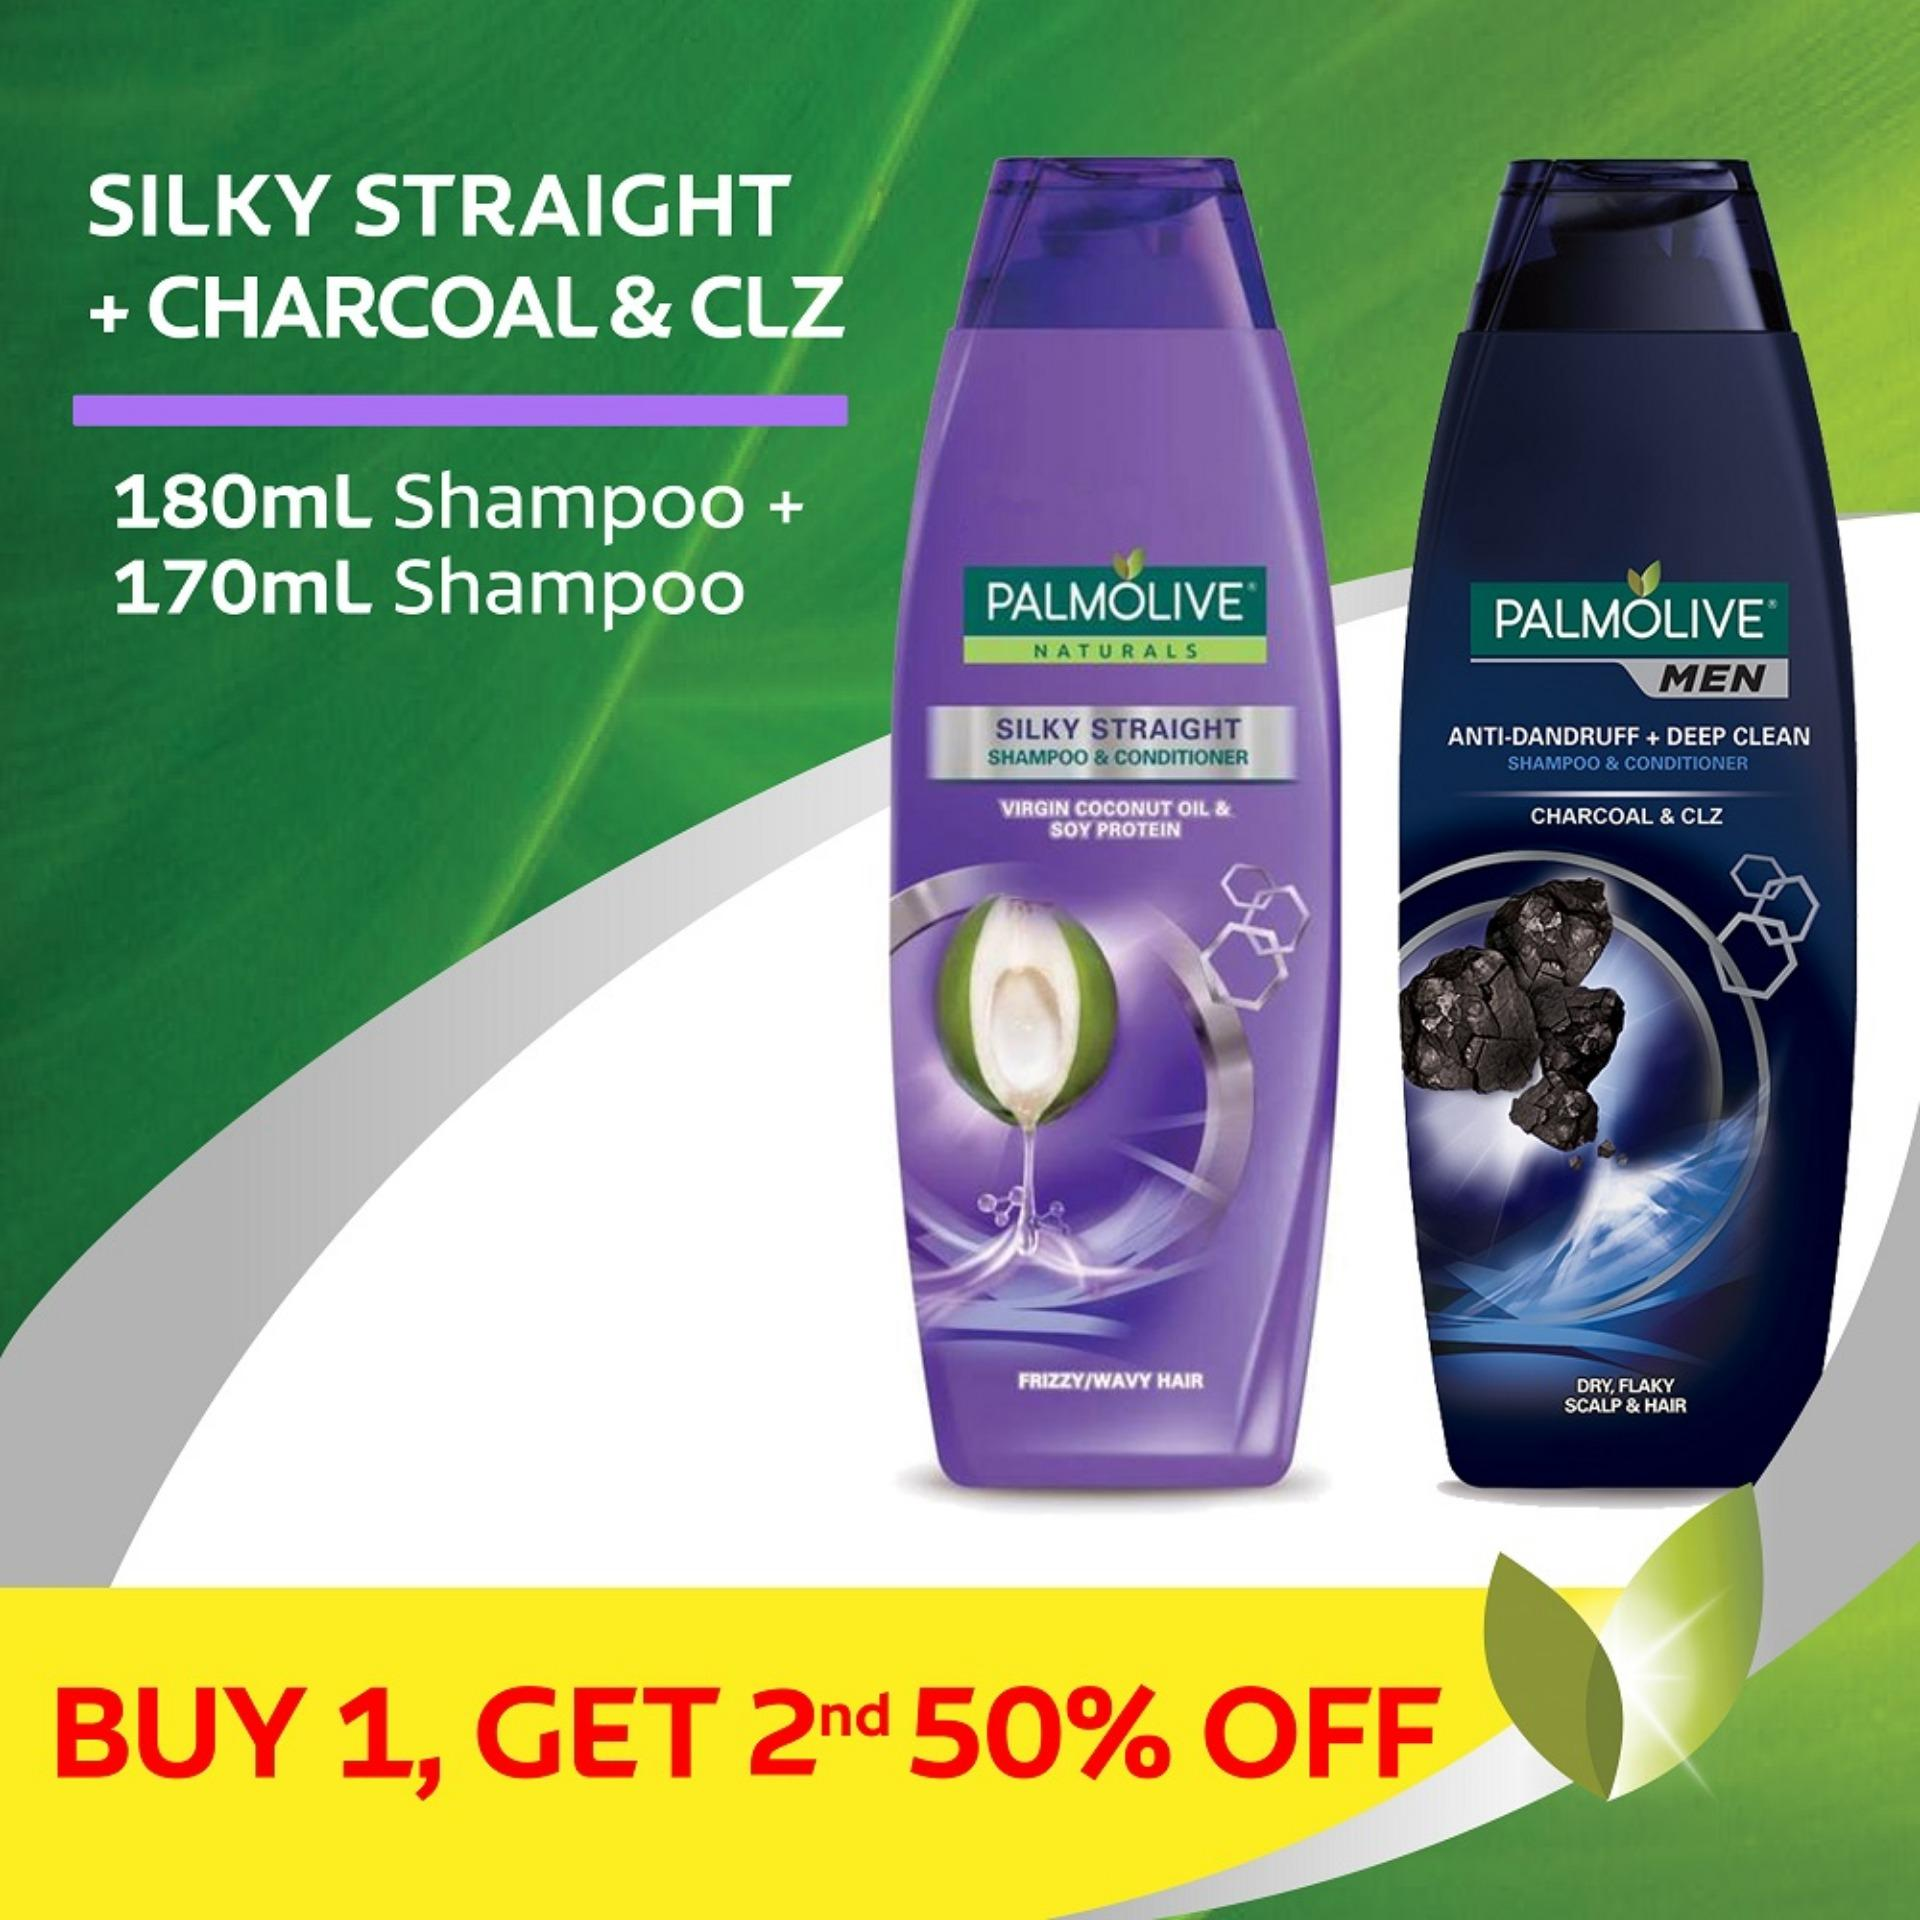 Palmolive Naturals Healthy Smooth Cream Conditioner Normal Hair Sunsilk Shampoo Damage Treatment 170ml Silky Straight 180ml Men Anti Dandruff Deep Clean